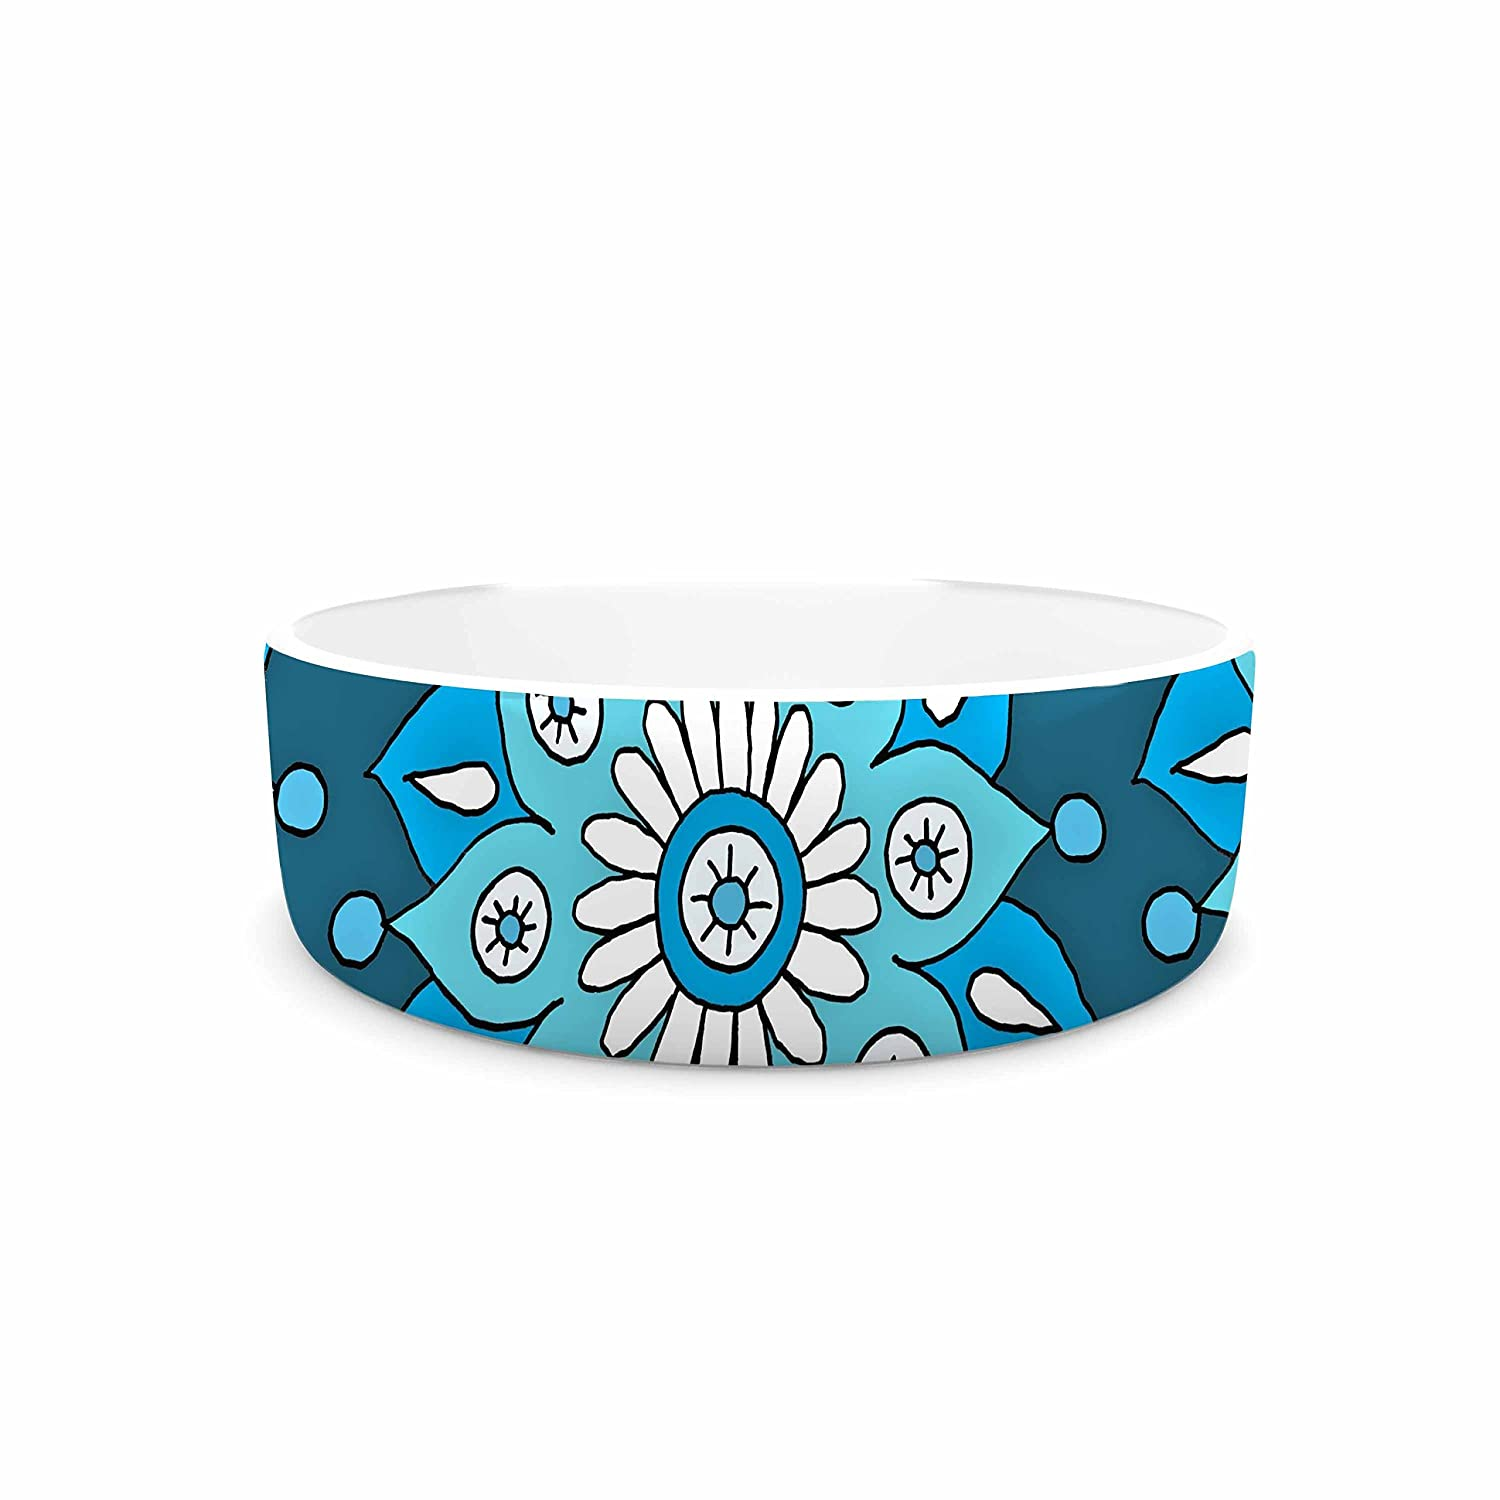 KESS InHouse Sarah Oelerich bluee Flower Burst  Aqua Pet Bowl, 4.75